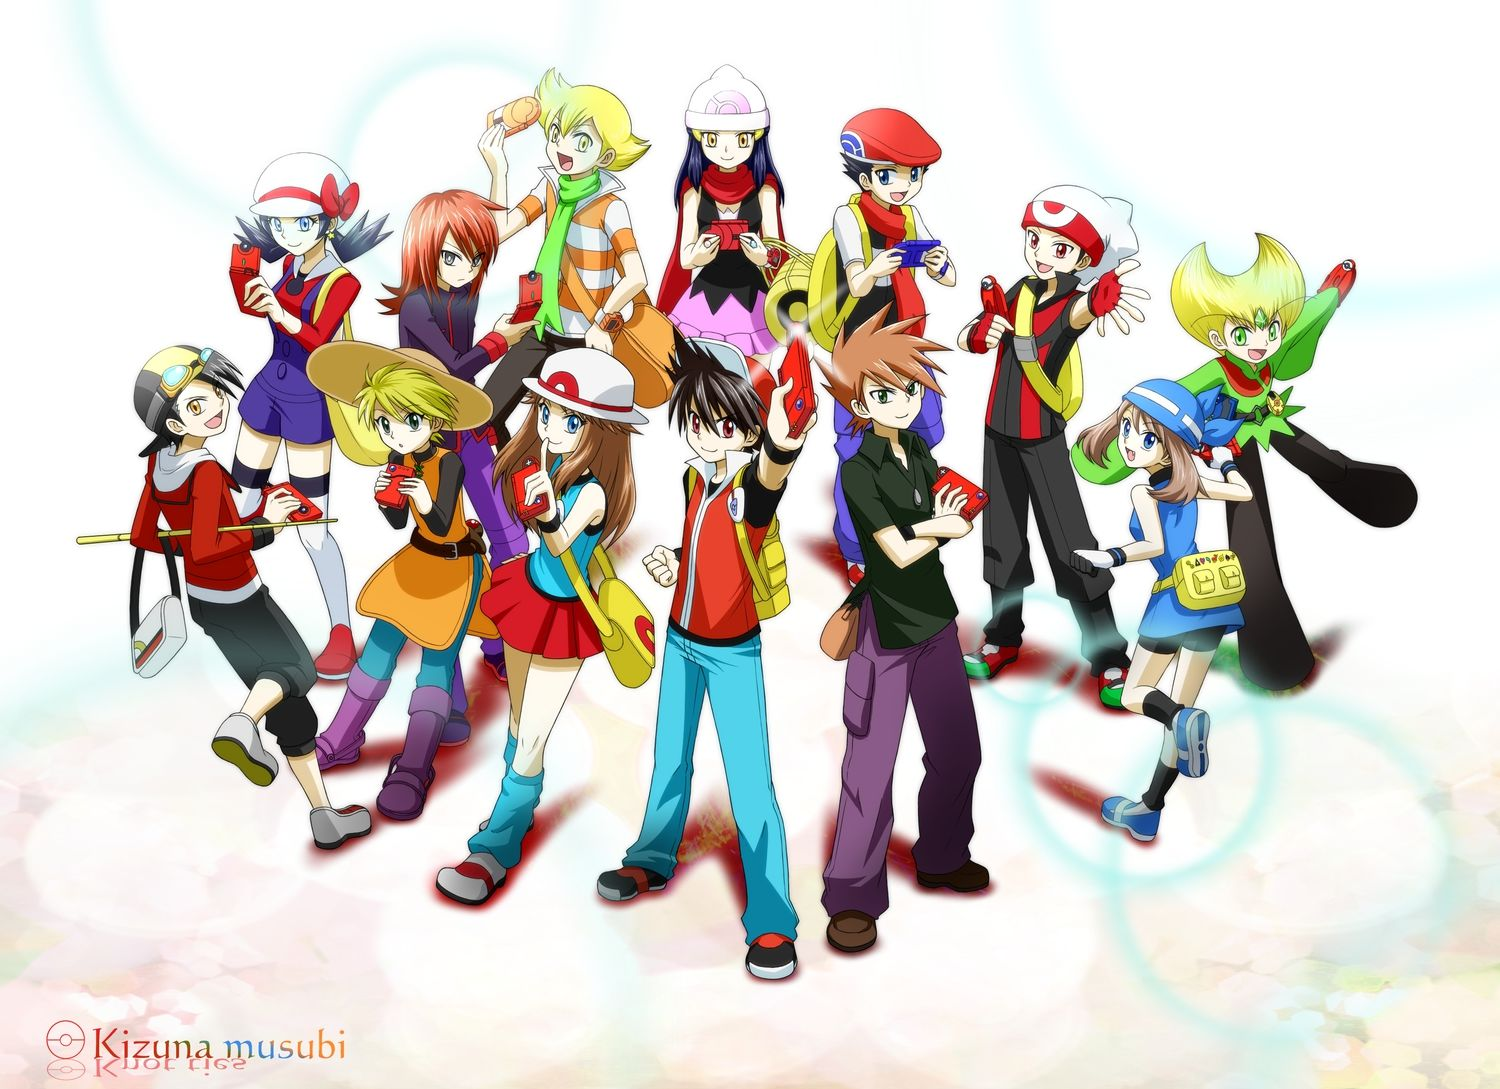 the growing popularity of the pokemon franchise Building on the giant video game franchise created in the '90s by a japanese   of twitter users if the game continues its current growth trajectory:  the initial  pokémon game released 20 years ago was extremely popular.